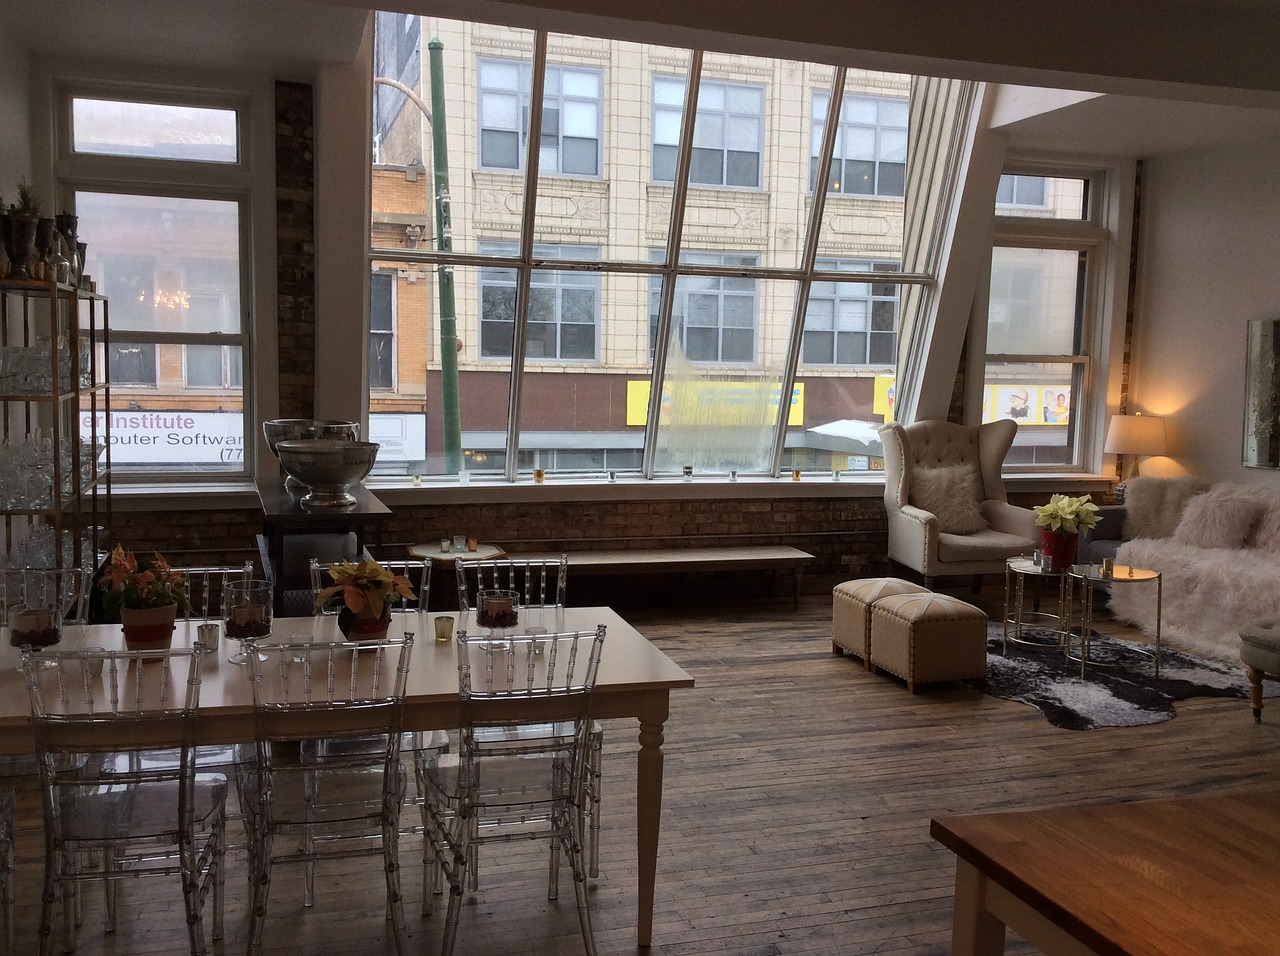 Apartment Moving Checklist: What to Do Before Move-In Day